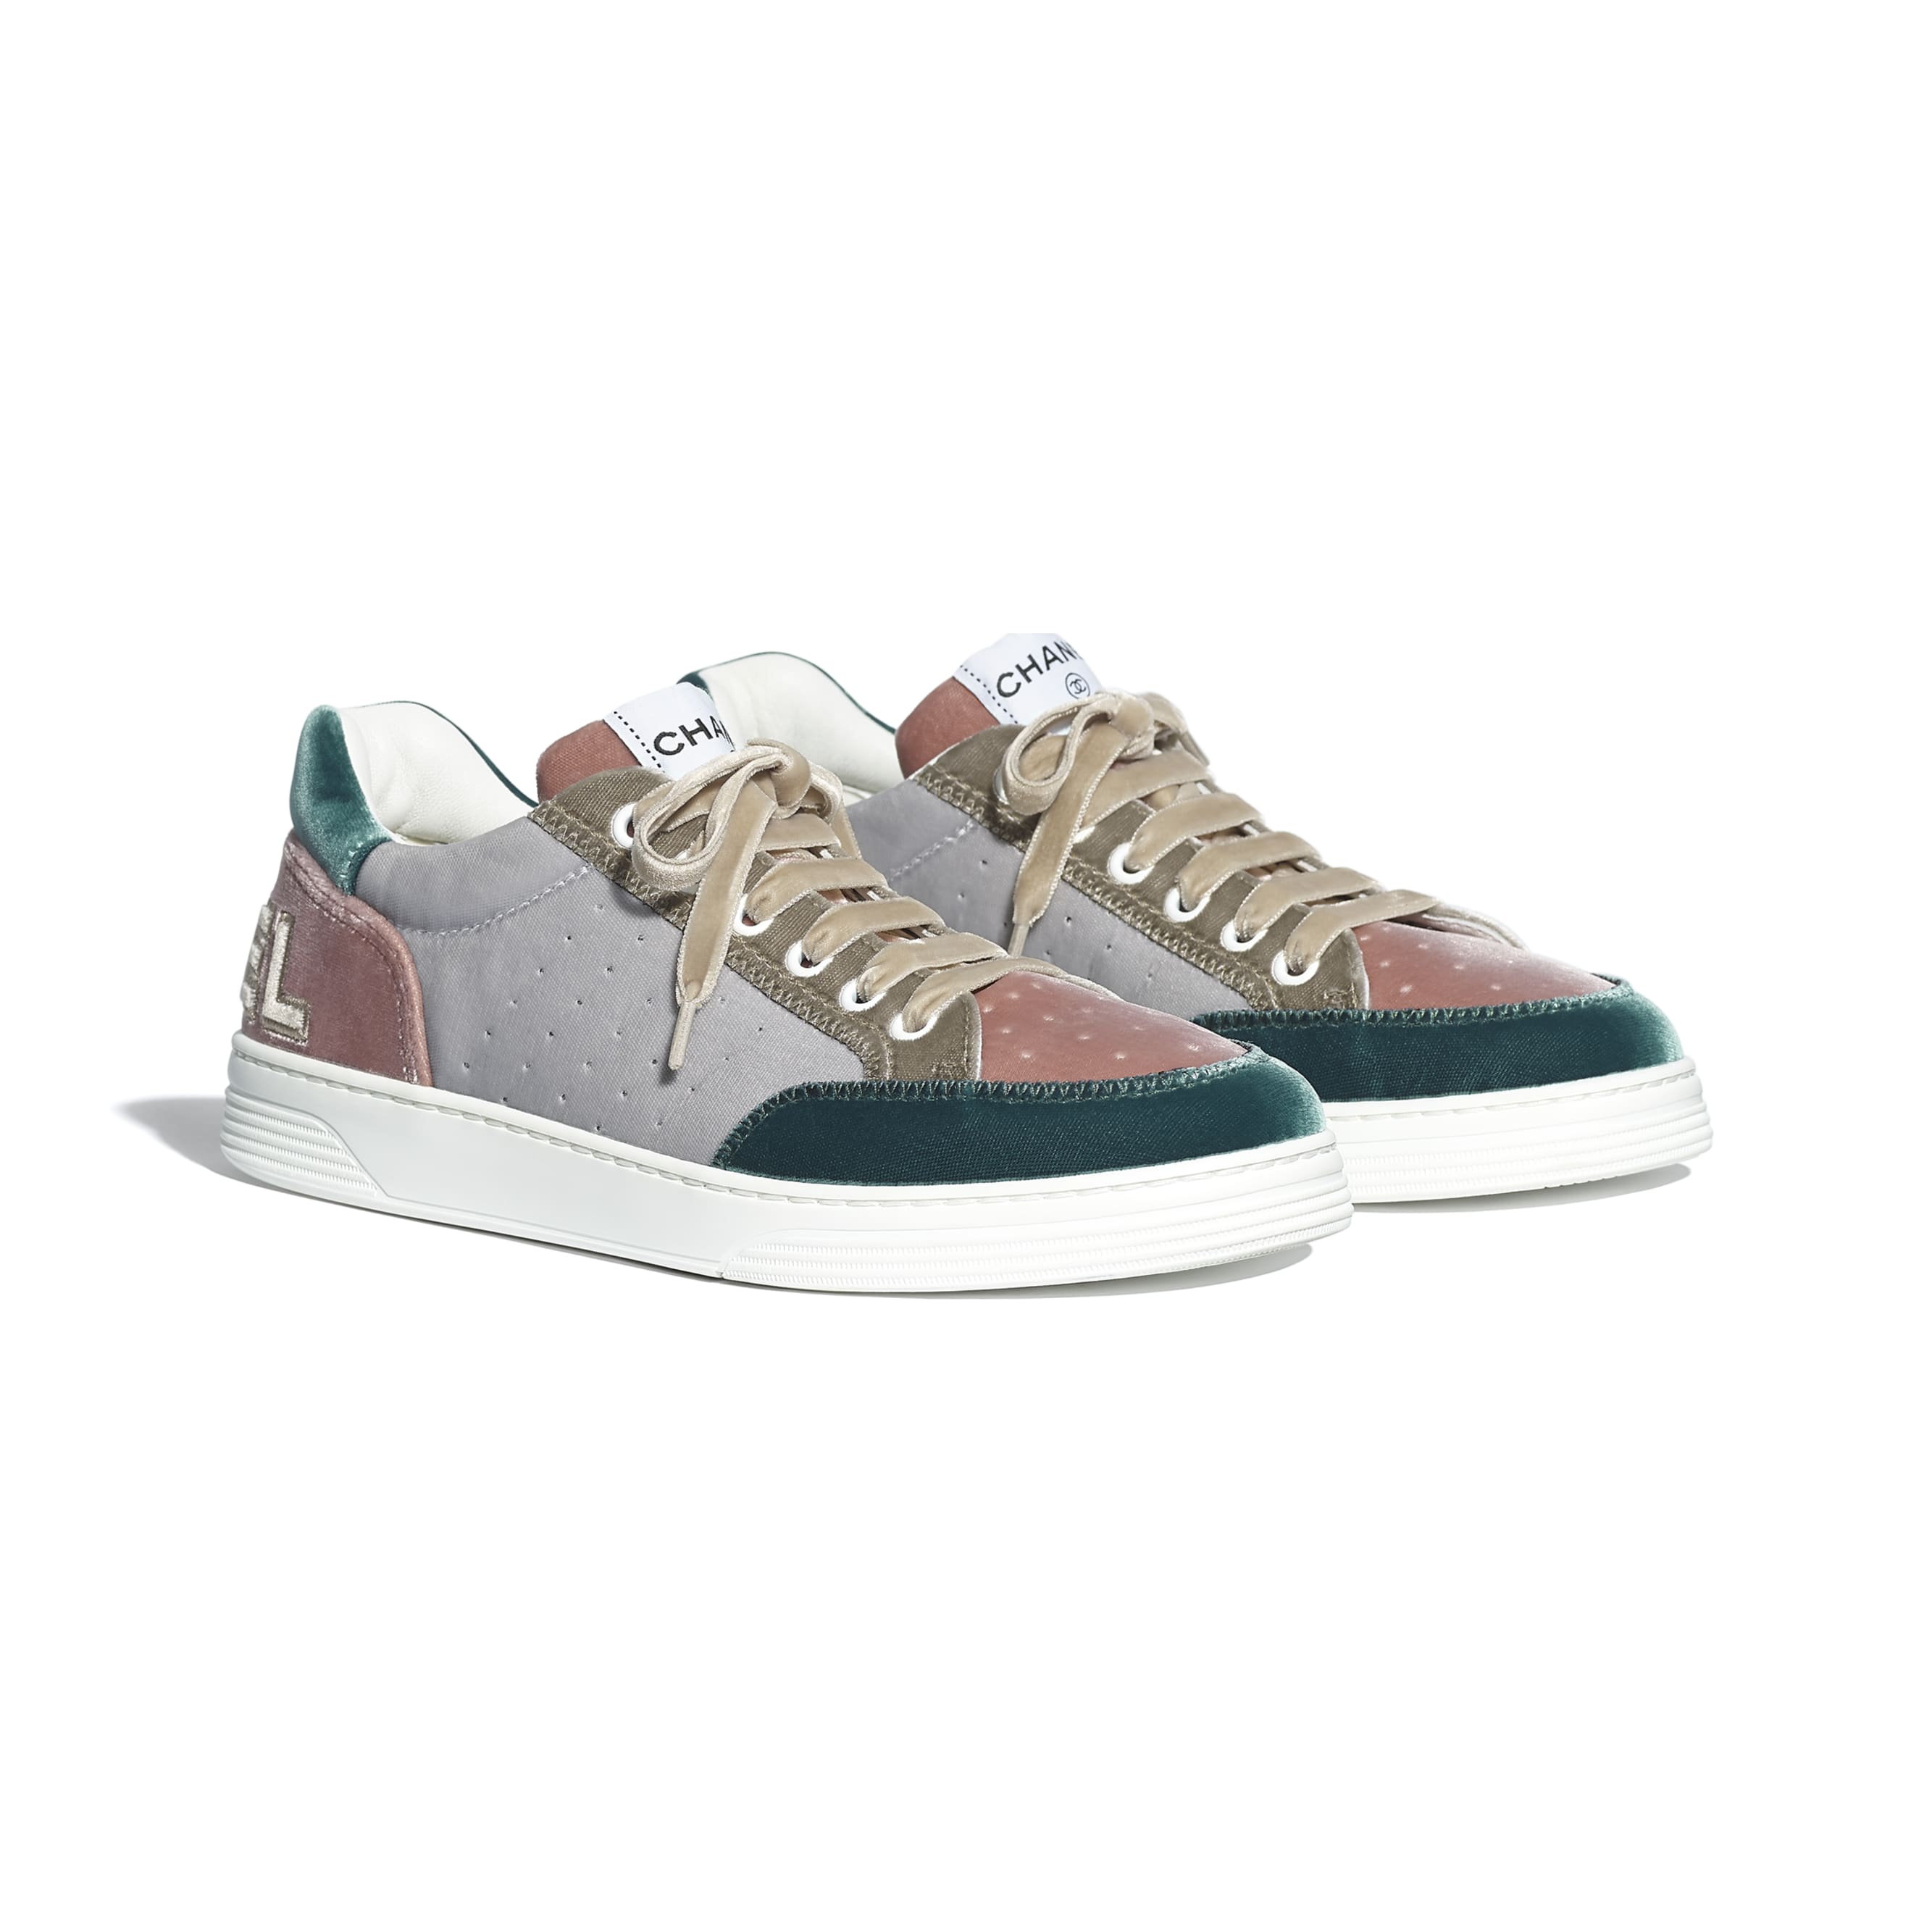 Trainers - Grey, Pink & Green - Velvet - CHANEL - Alternative view - see standard sized version